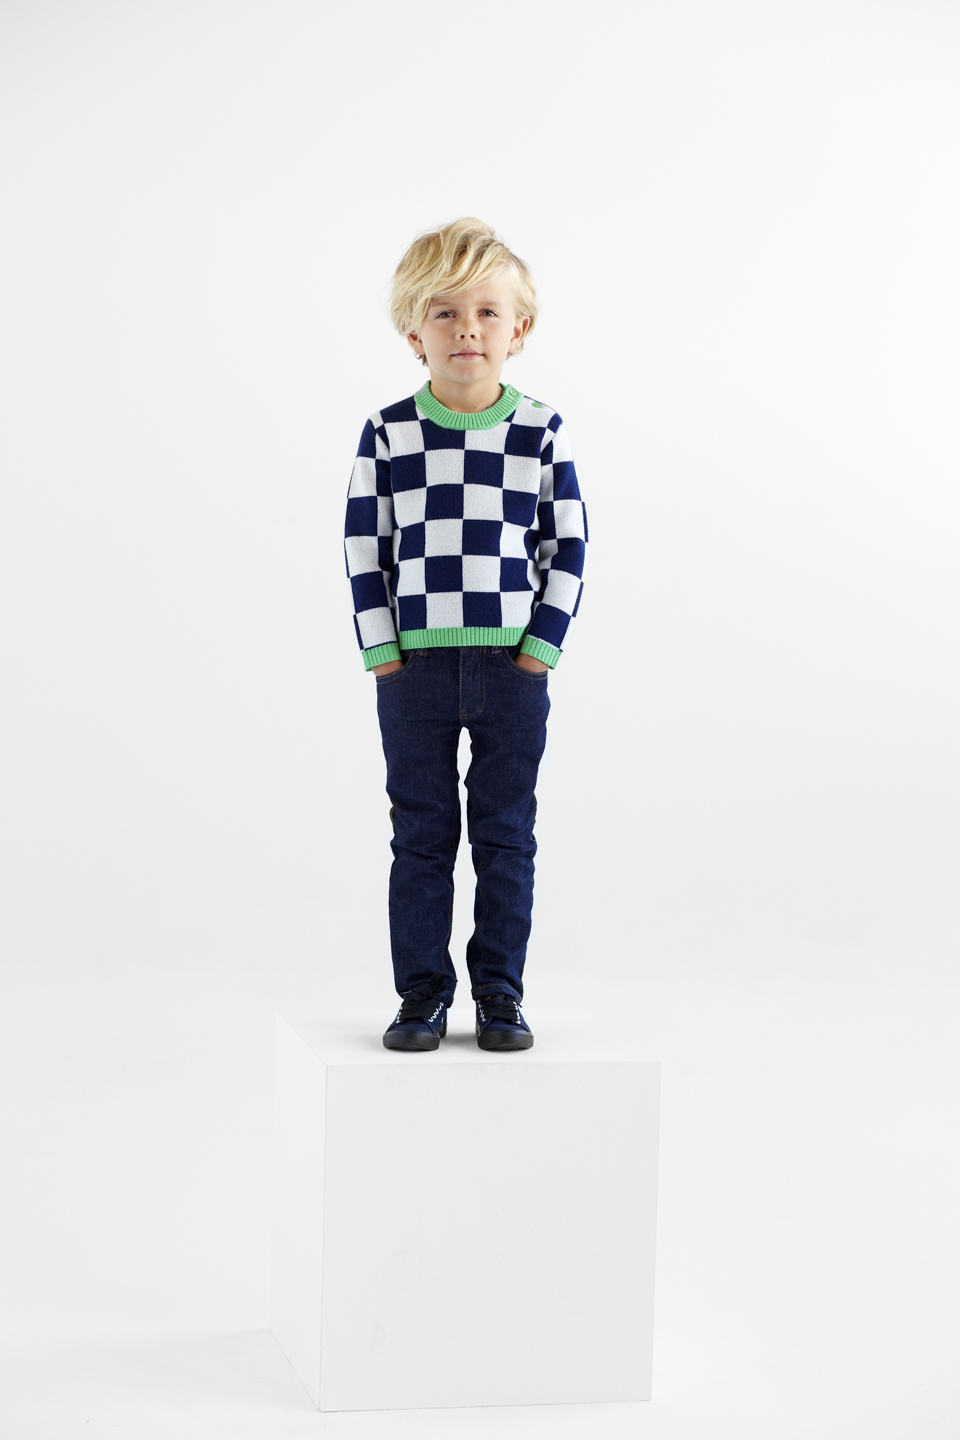 Atelier Child_FW15_The Check Navy Sweater_Hi Res.jpg